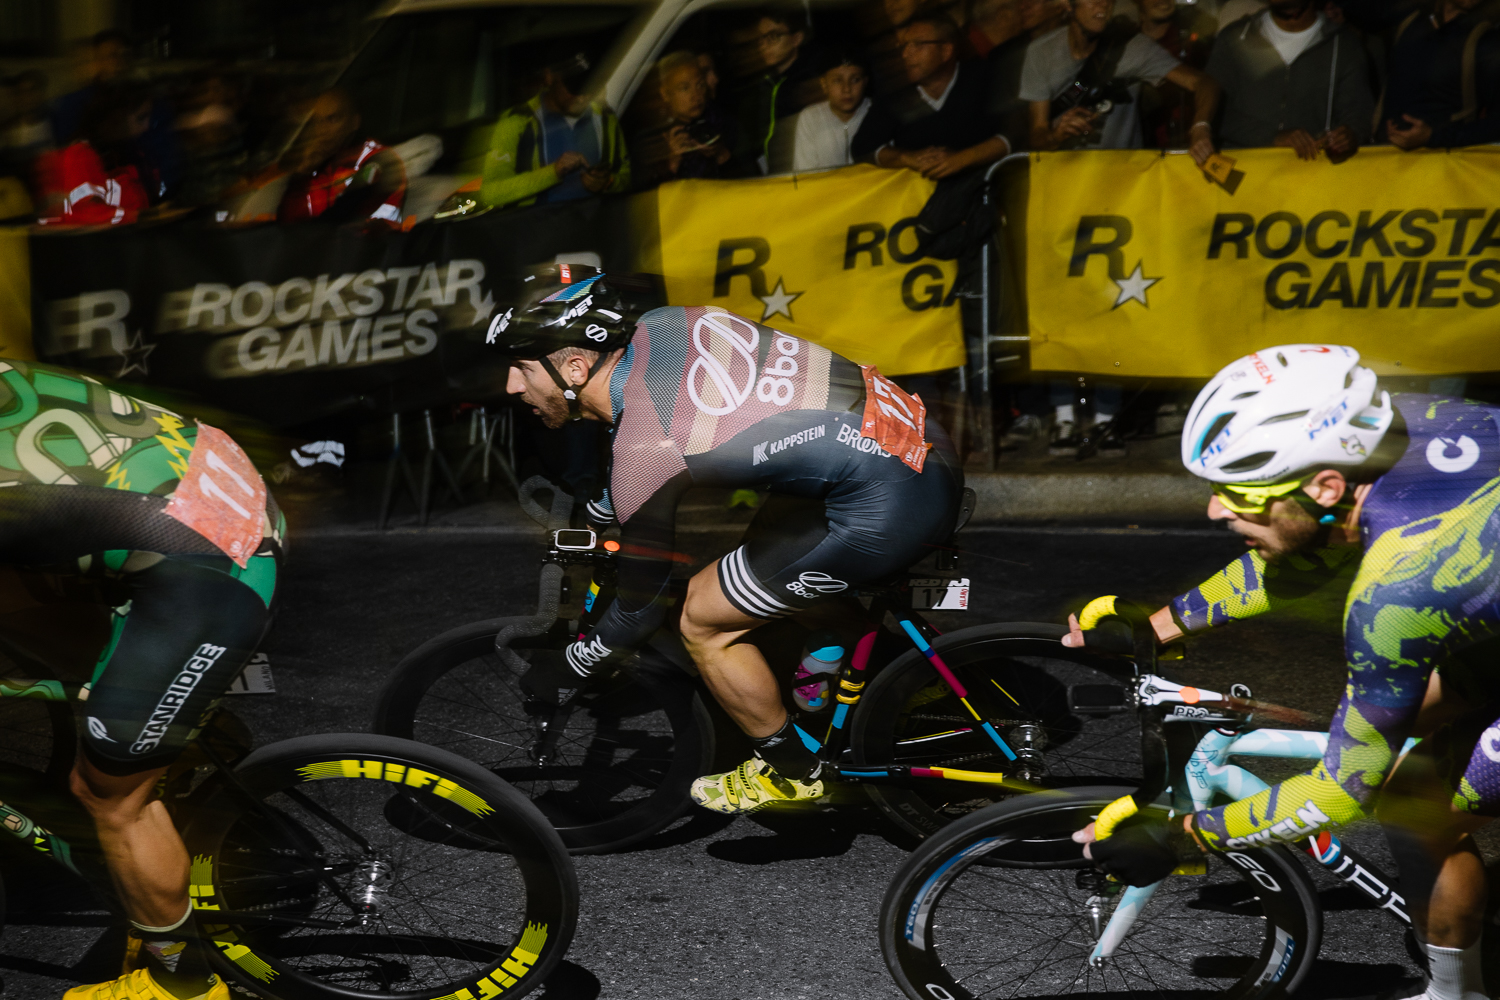 8bar team red hook crit milan 2017 frs20225 - Schnell, schneller, Red Hook Crit Mailand